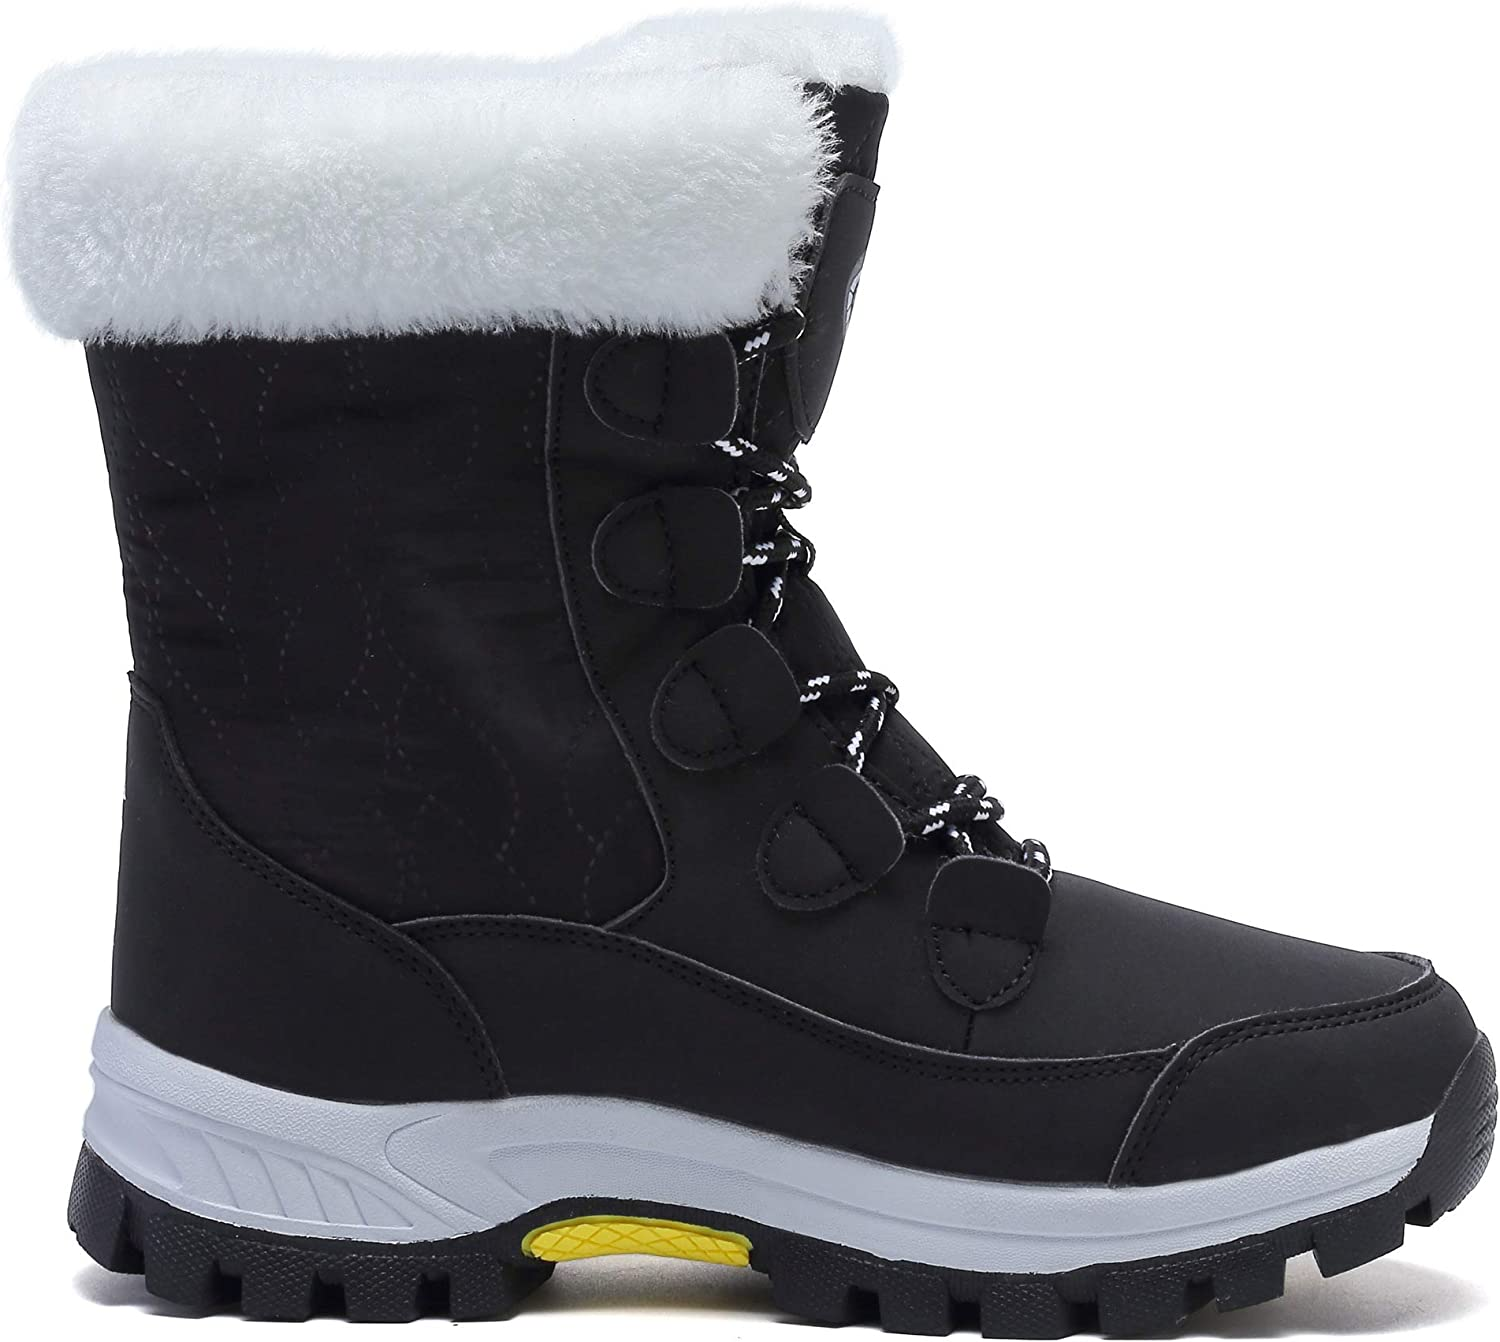 Girls Boys Winter Ankle Snow Boots Walking Hiking Plush Lined Warm Outdoor Shoes